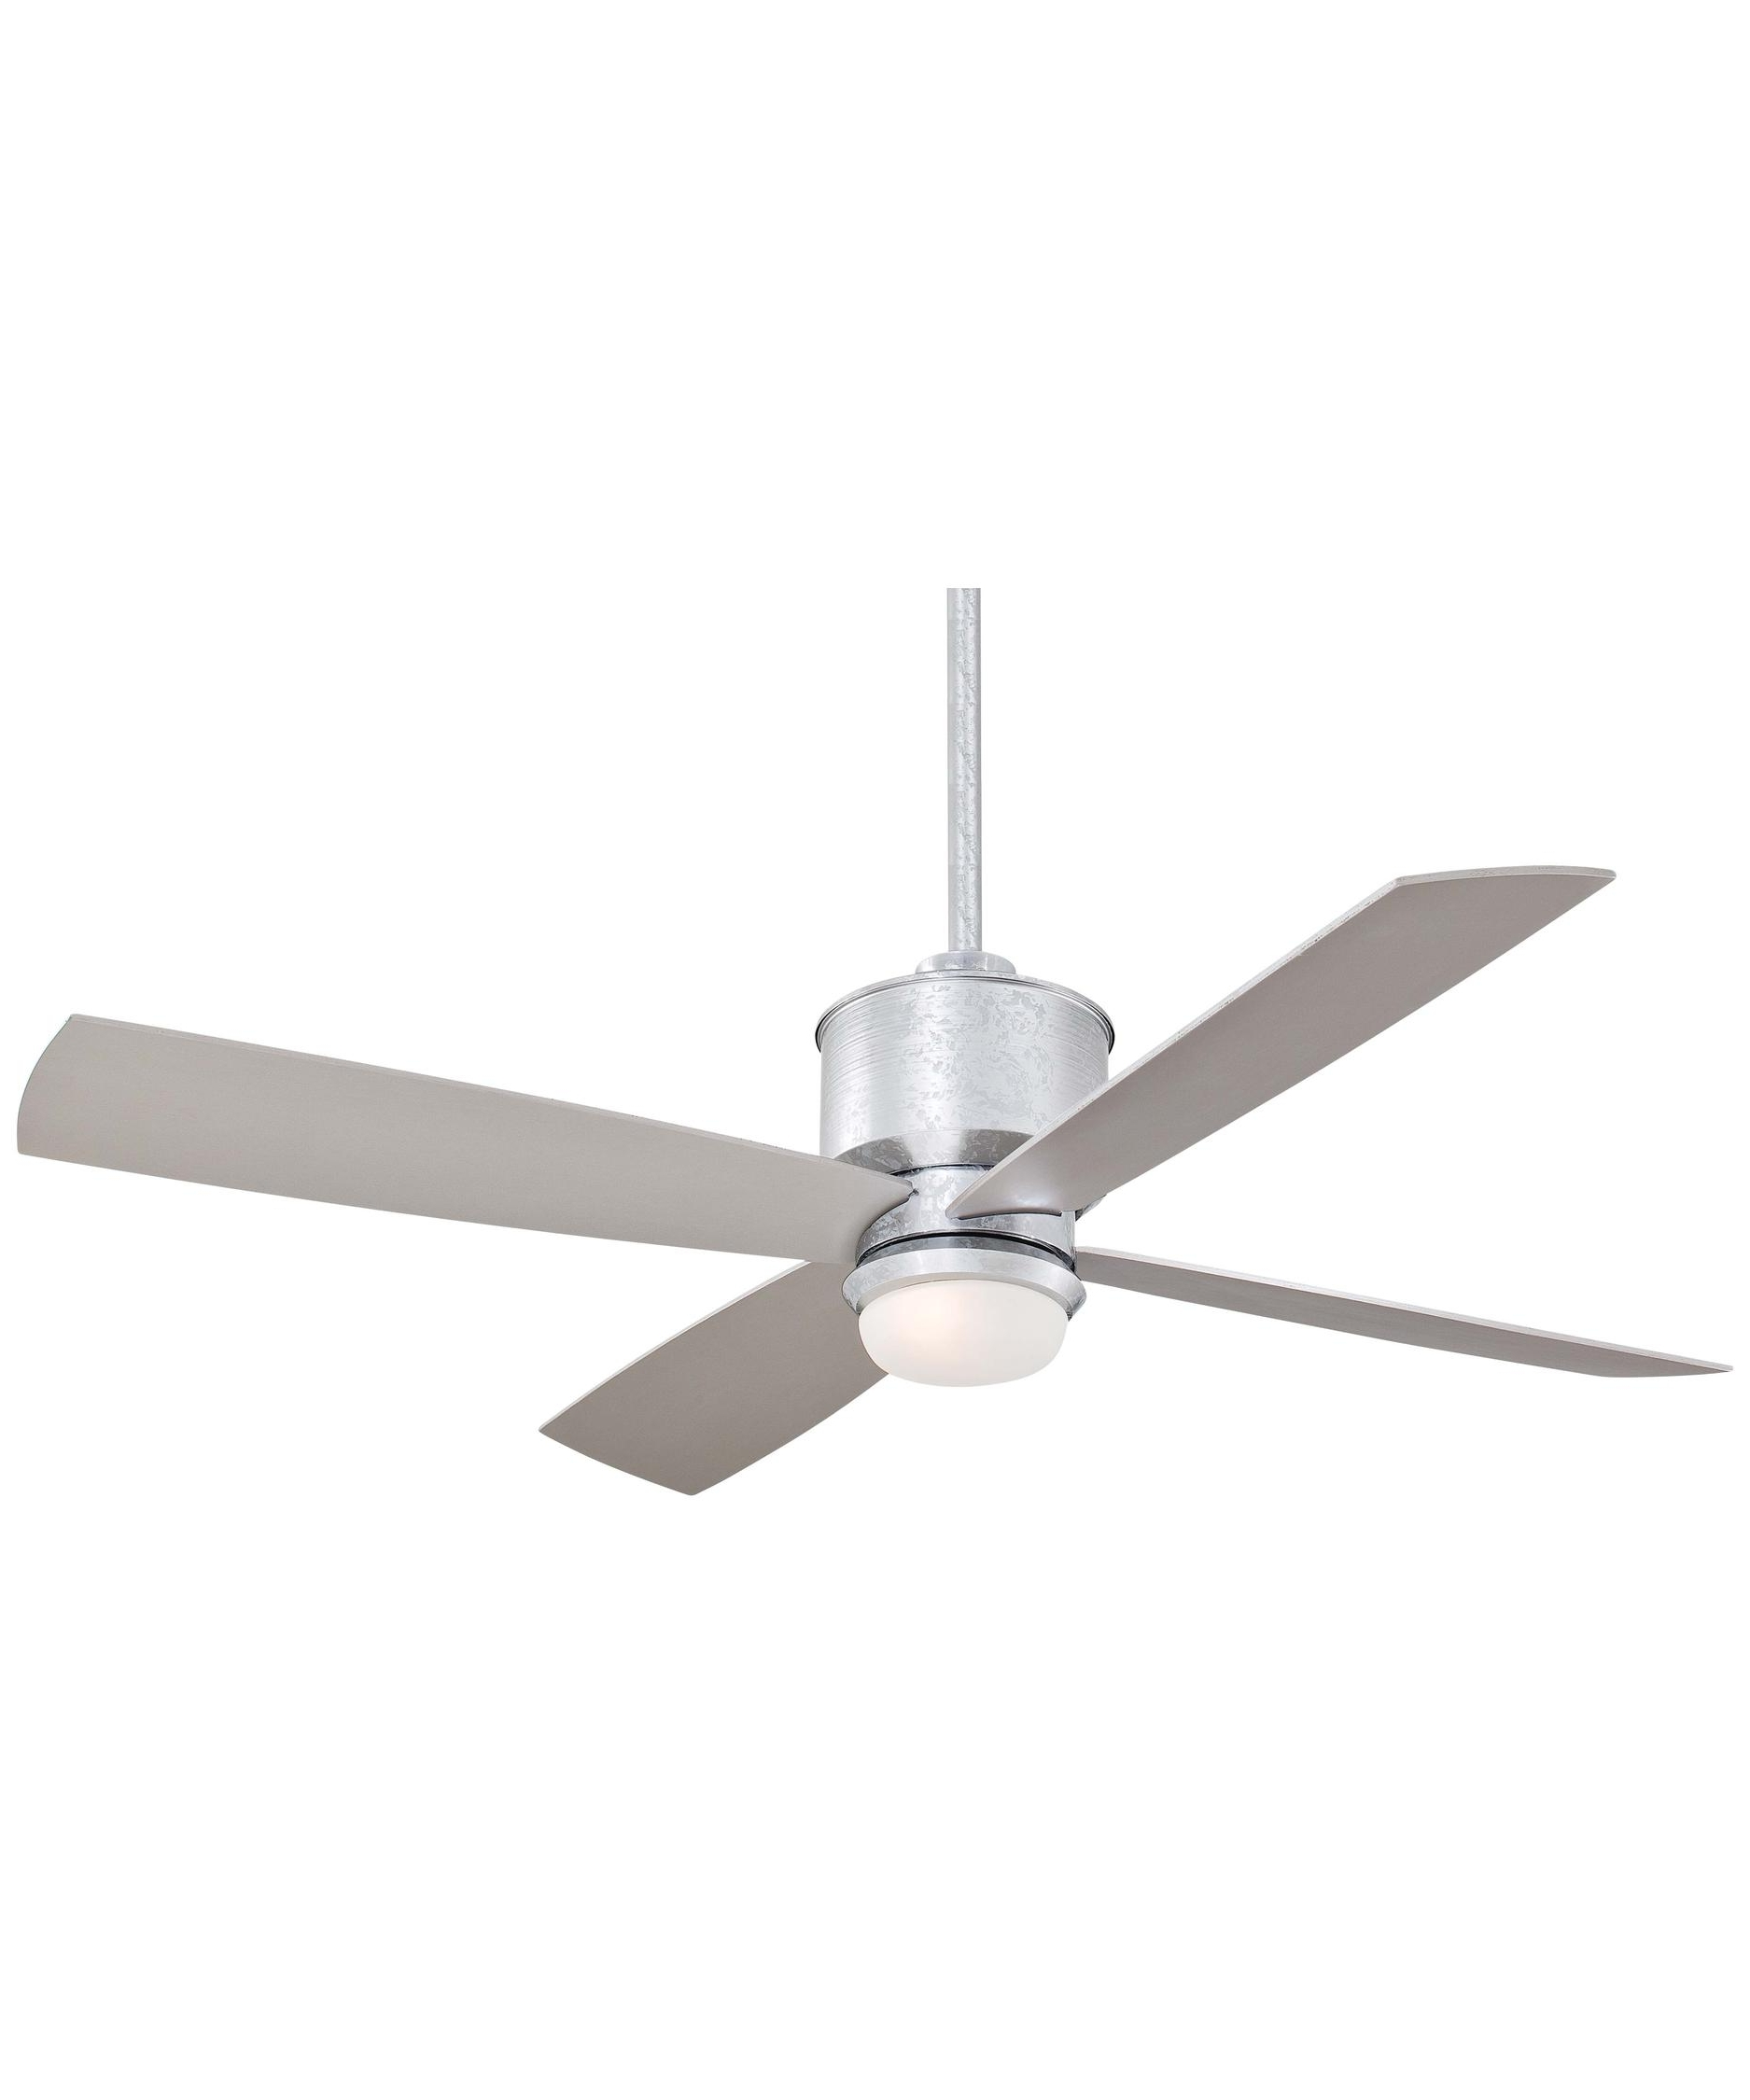 Capitol Regarding Trendy 52 Inch Outdoor Ceiling Fans With Lights (View 12 of 20)